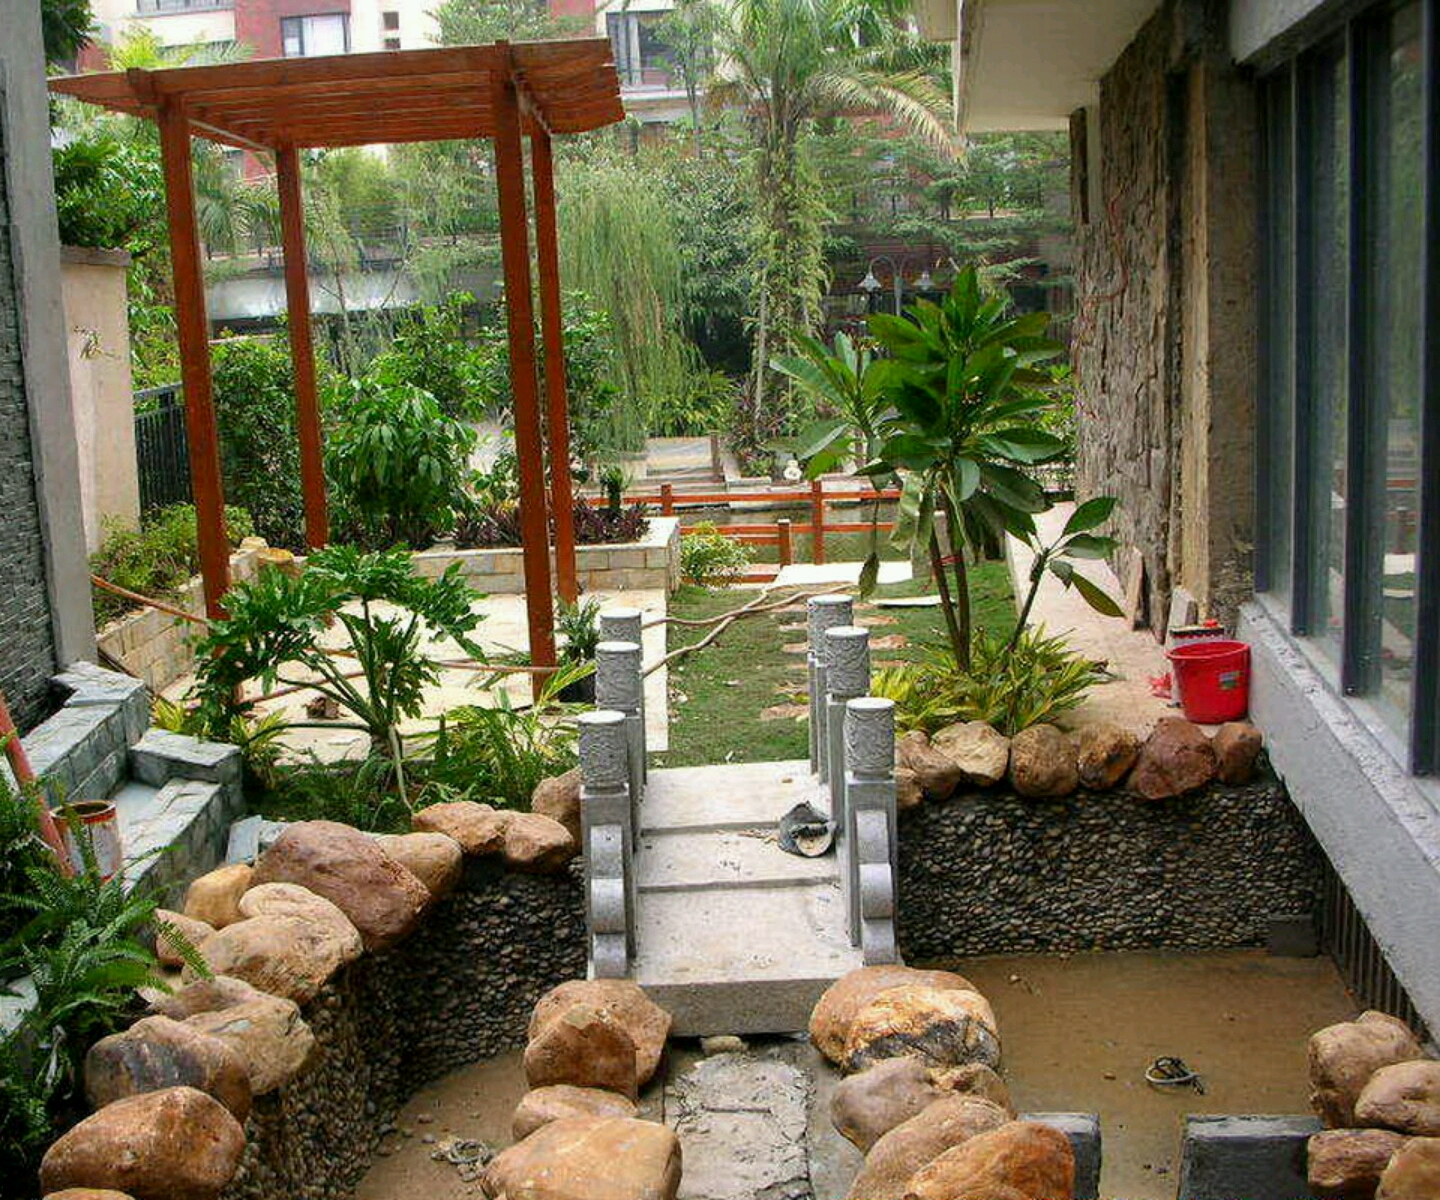 Home And Garden Design Ideas: Home Decor 2012: Beautiful Home Gardens Designs Ideas